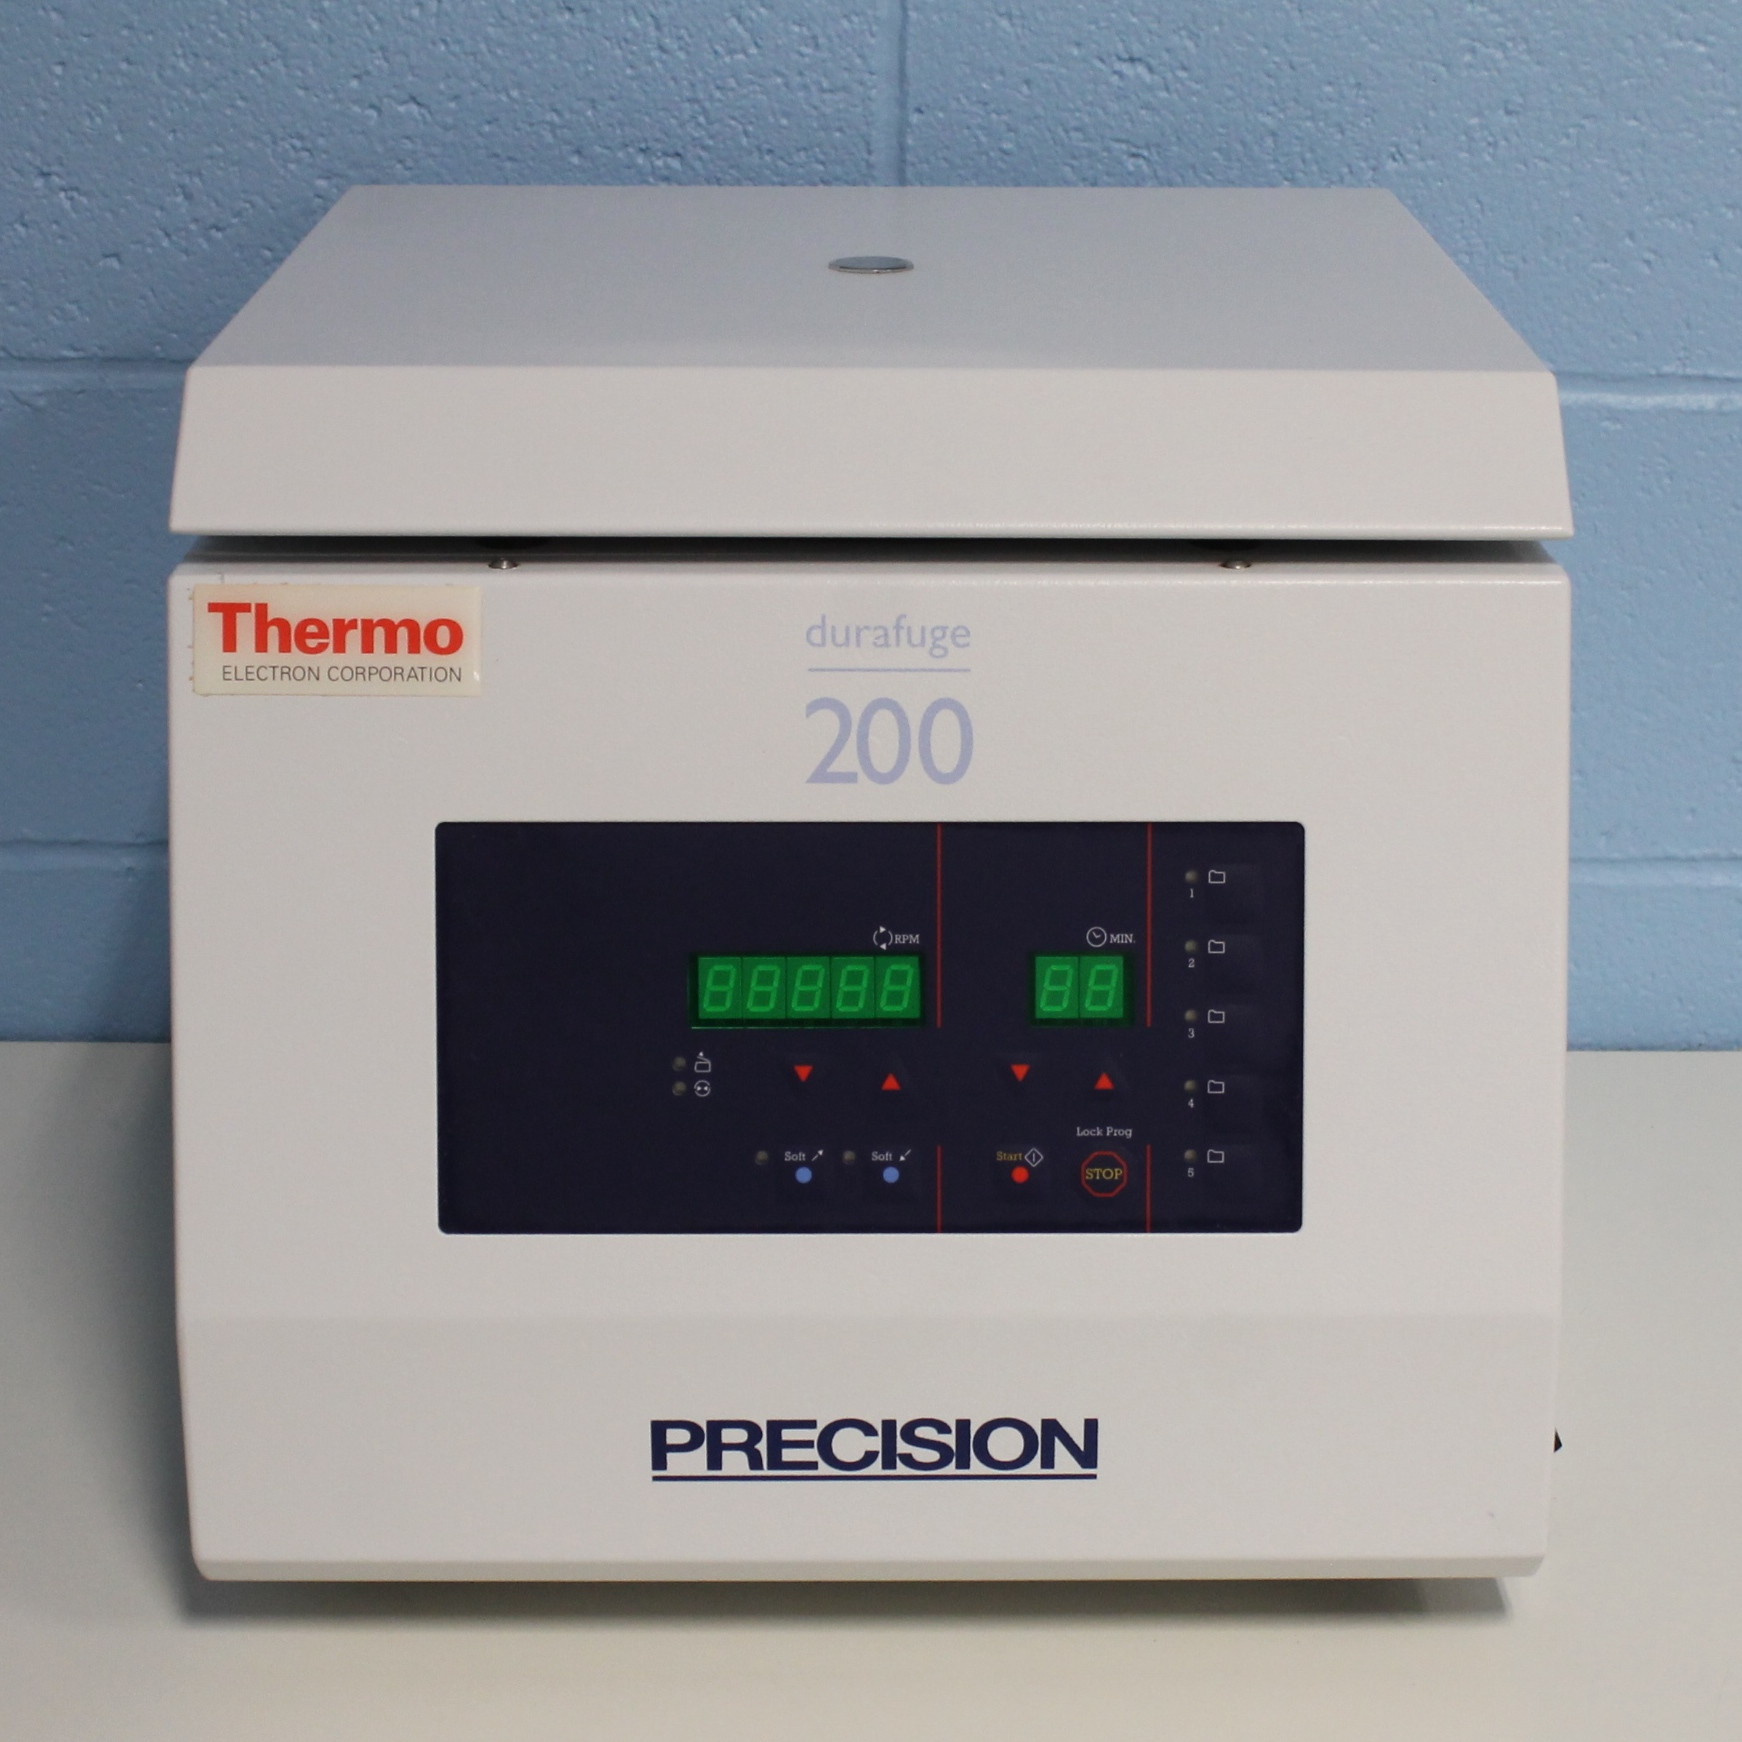 Thermo Durafuge 200 Precision Centrifuge Image